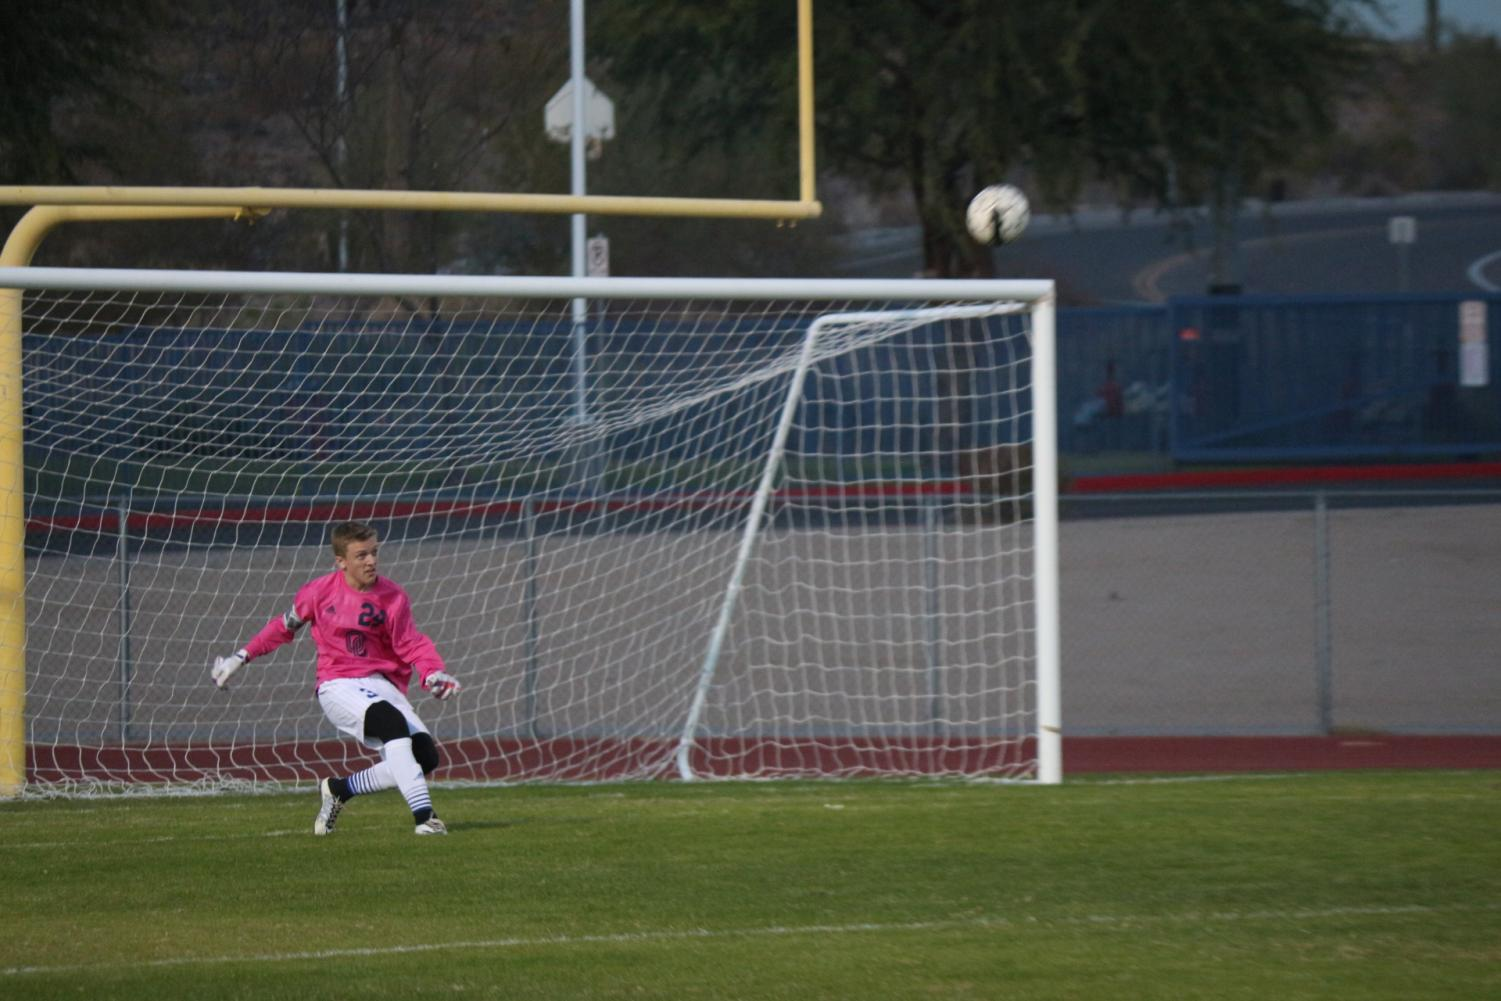 Chase Toncheff, junior, kicks the ball back into the action.